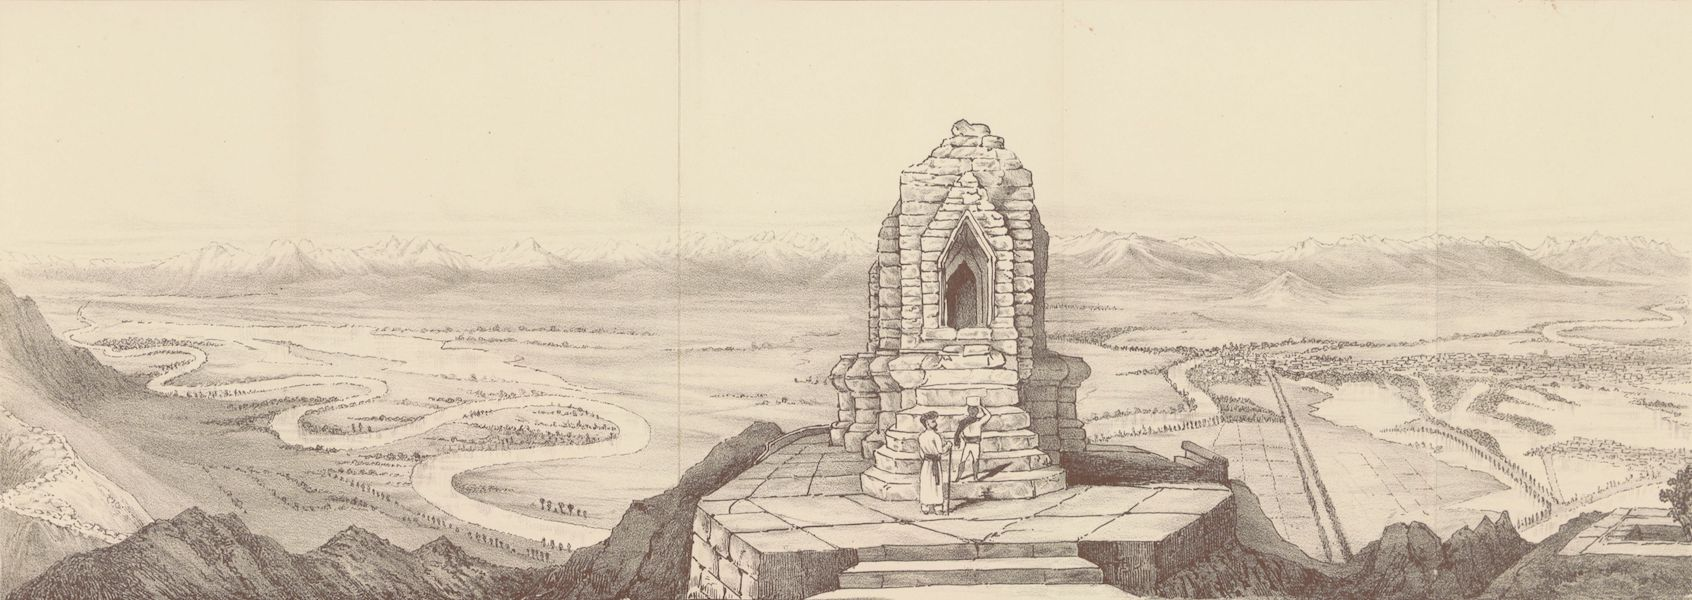 Journals Kept in Hyderabad, Kashmir, Sikkim, and Nepal Vol. 2 - Sketch of the Panorama from the Takht-i-Sulaiman (East-South-West) (1887)